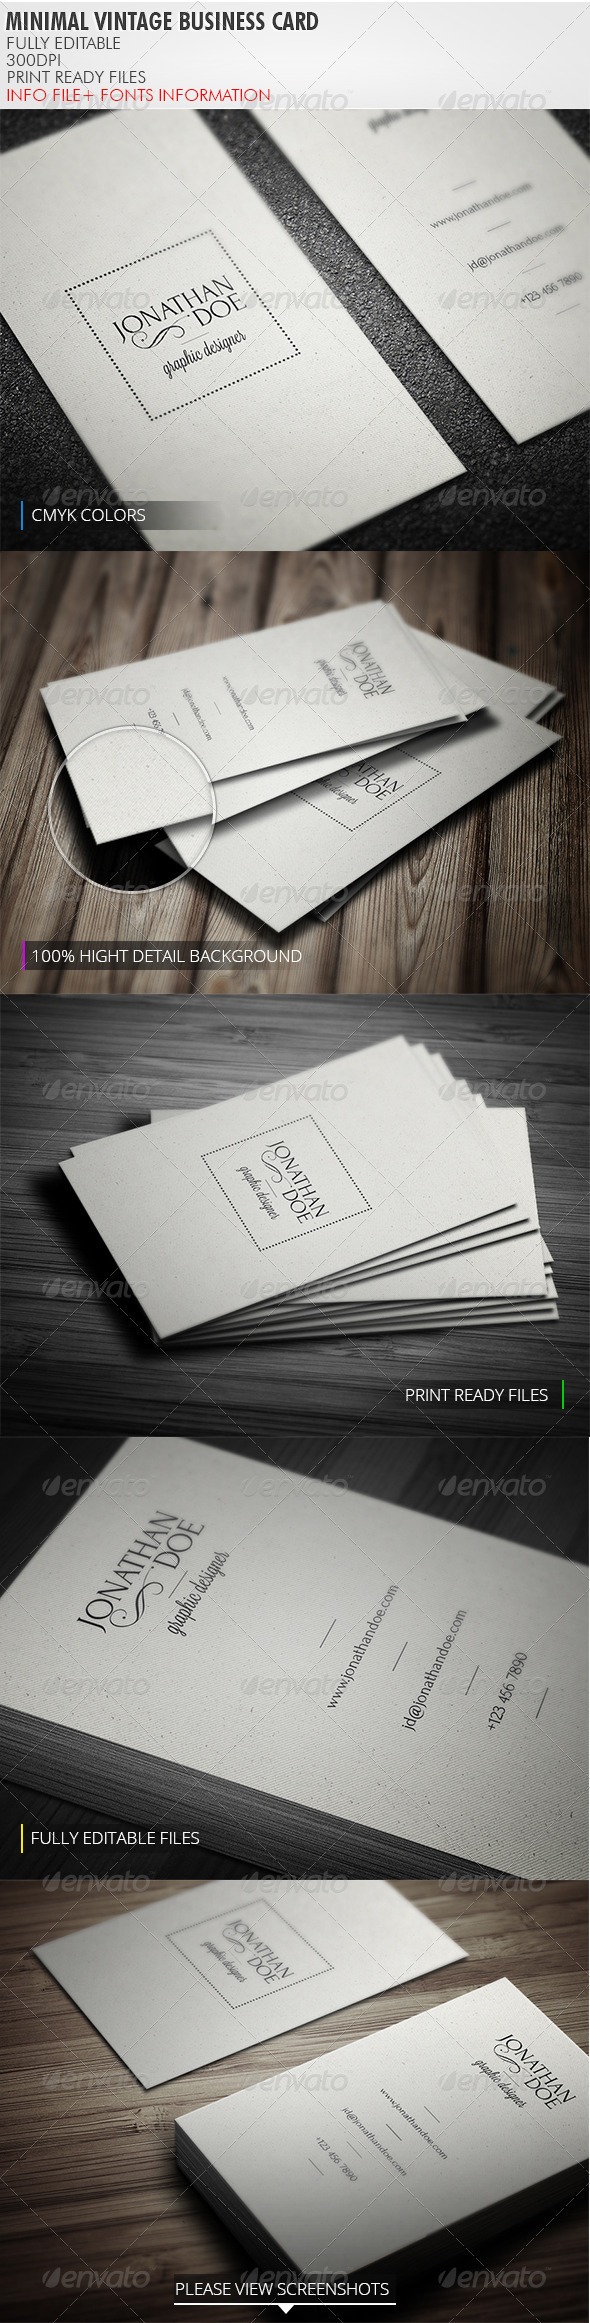 GraphicRiver Minimal Vintage Business Card 3831335